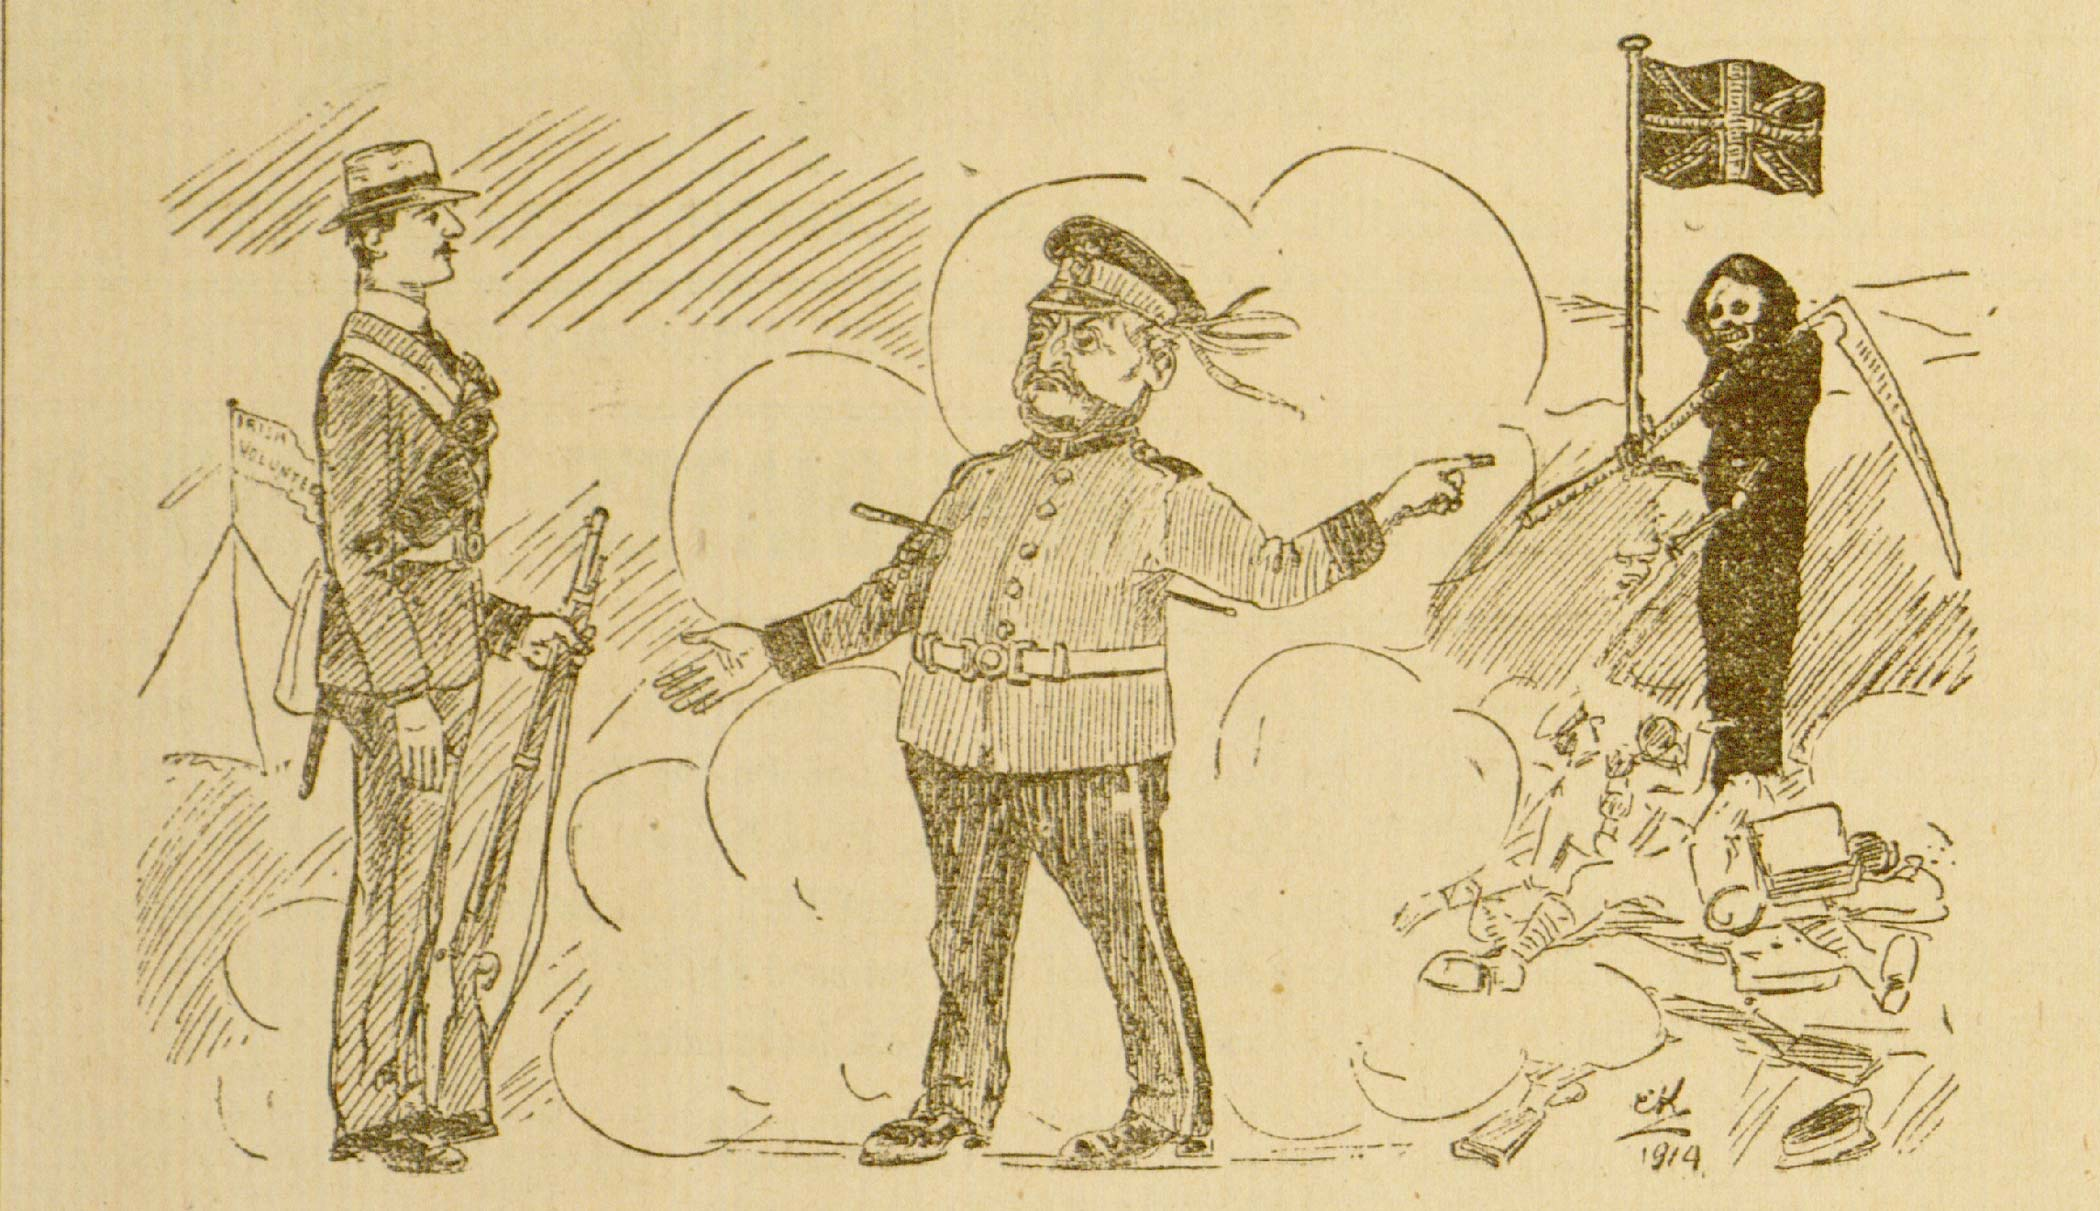 Anti-Conscription meeting in Dublin